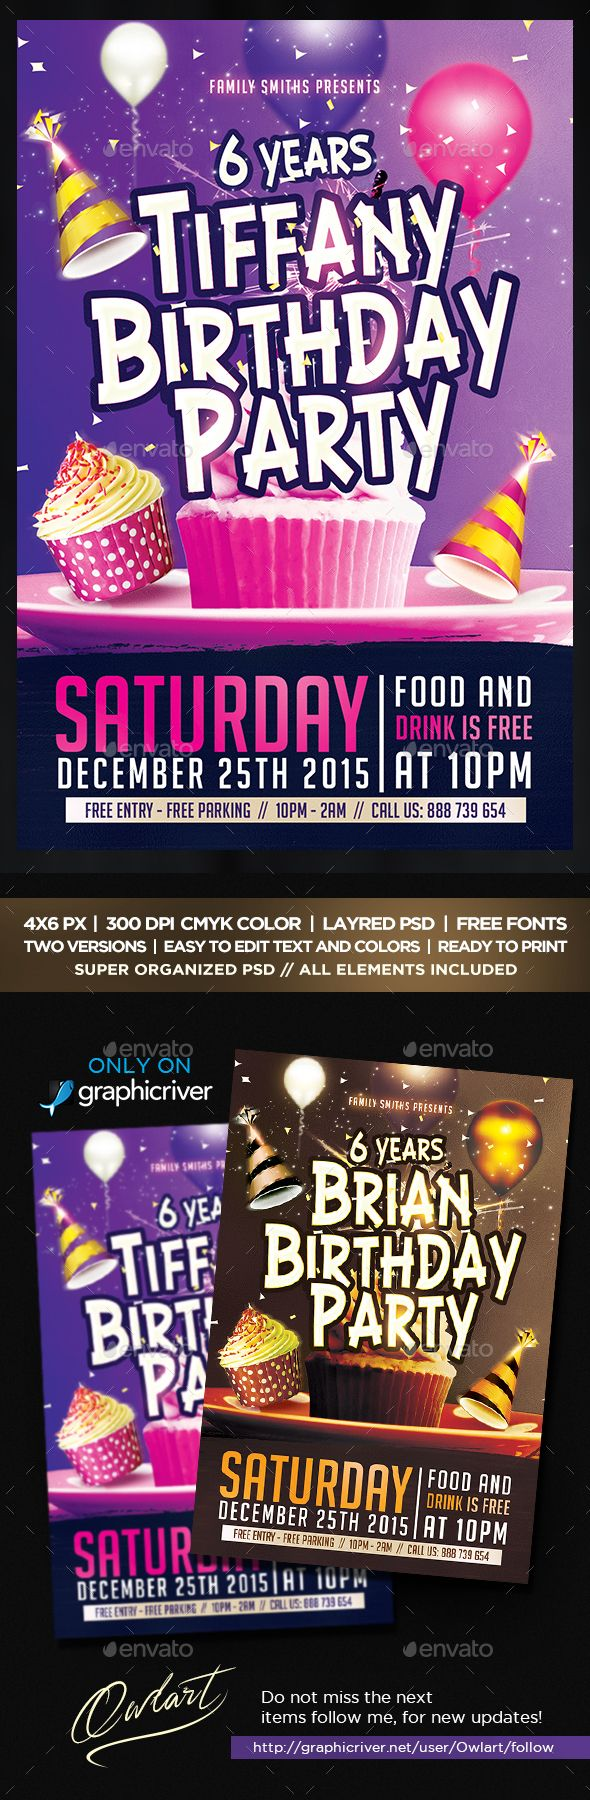 birthday party flyer template psd design download http